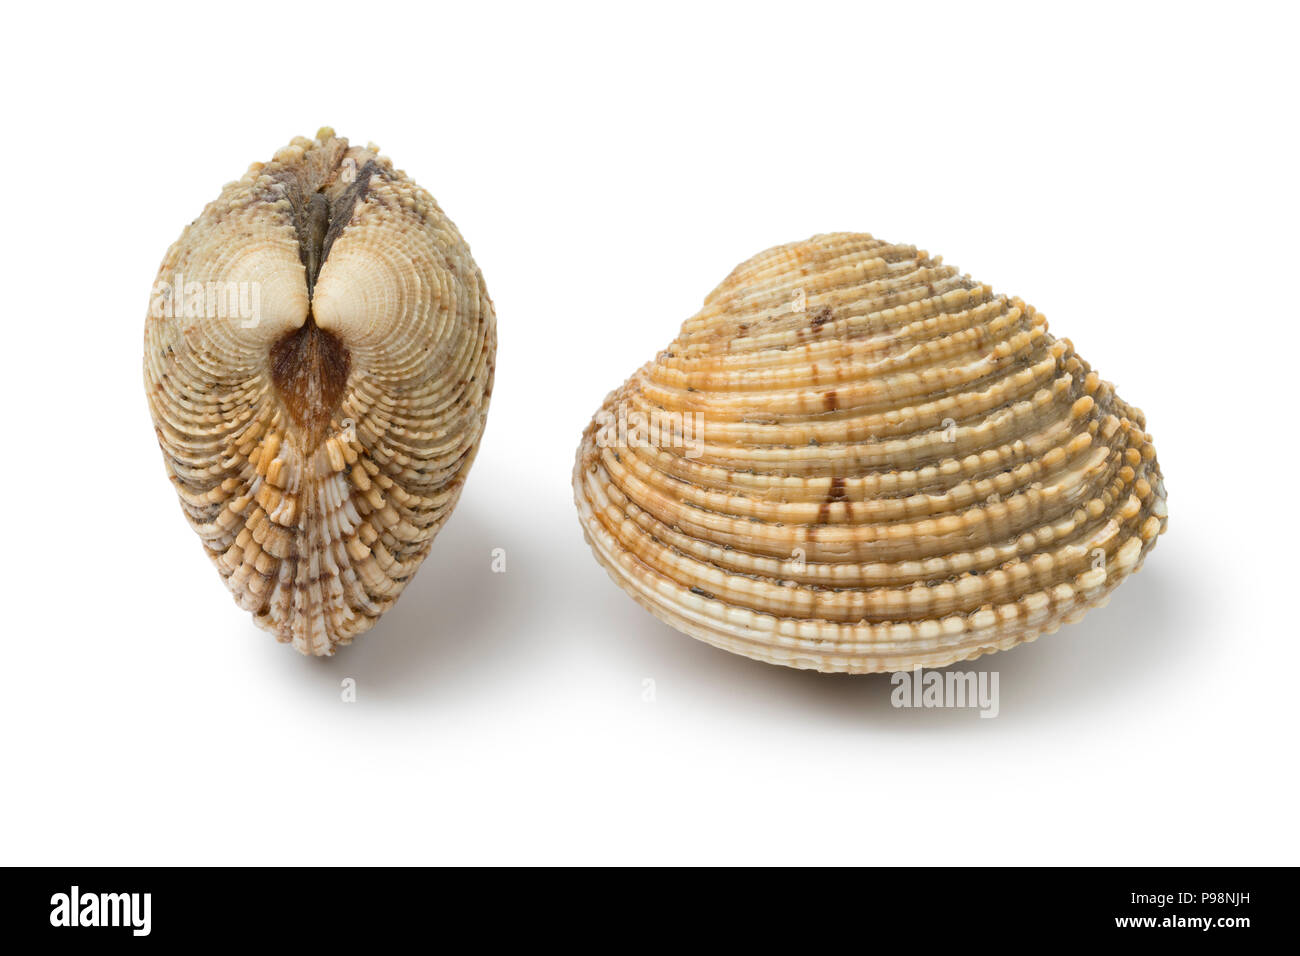 Pair of two fresh raw warty venus clams isolated on white background - Stock Image